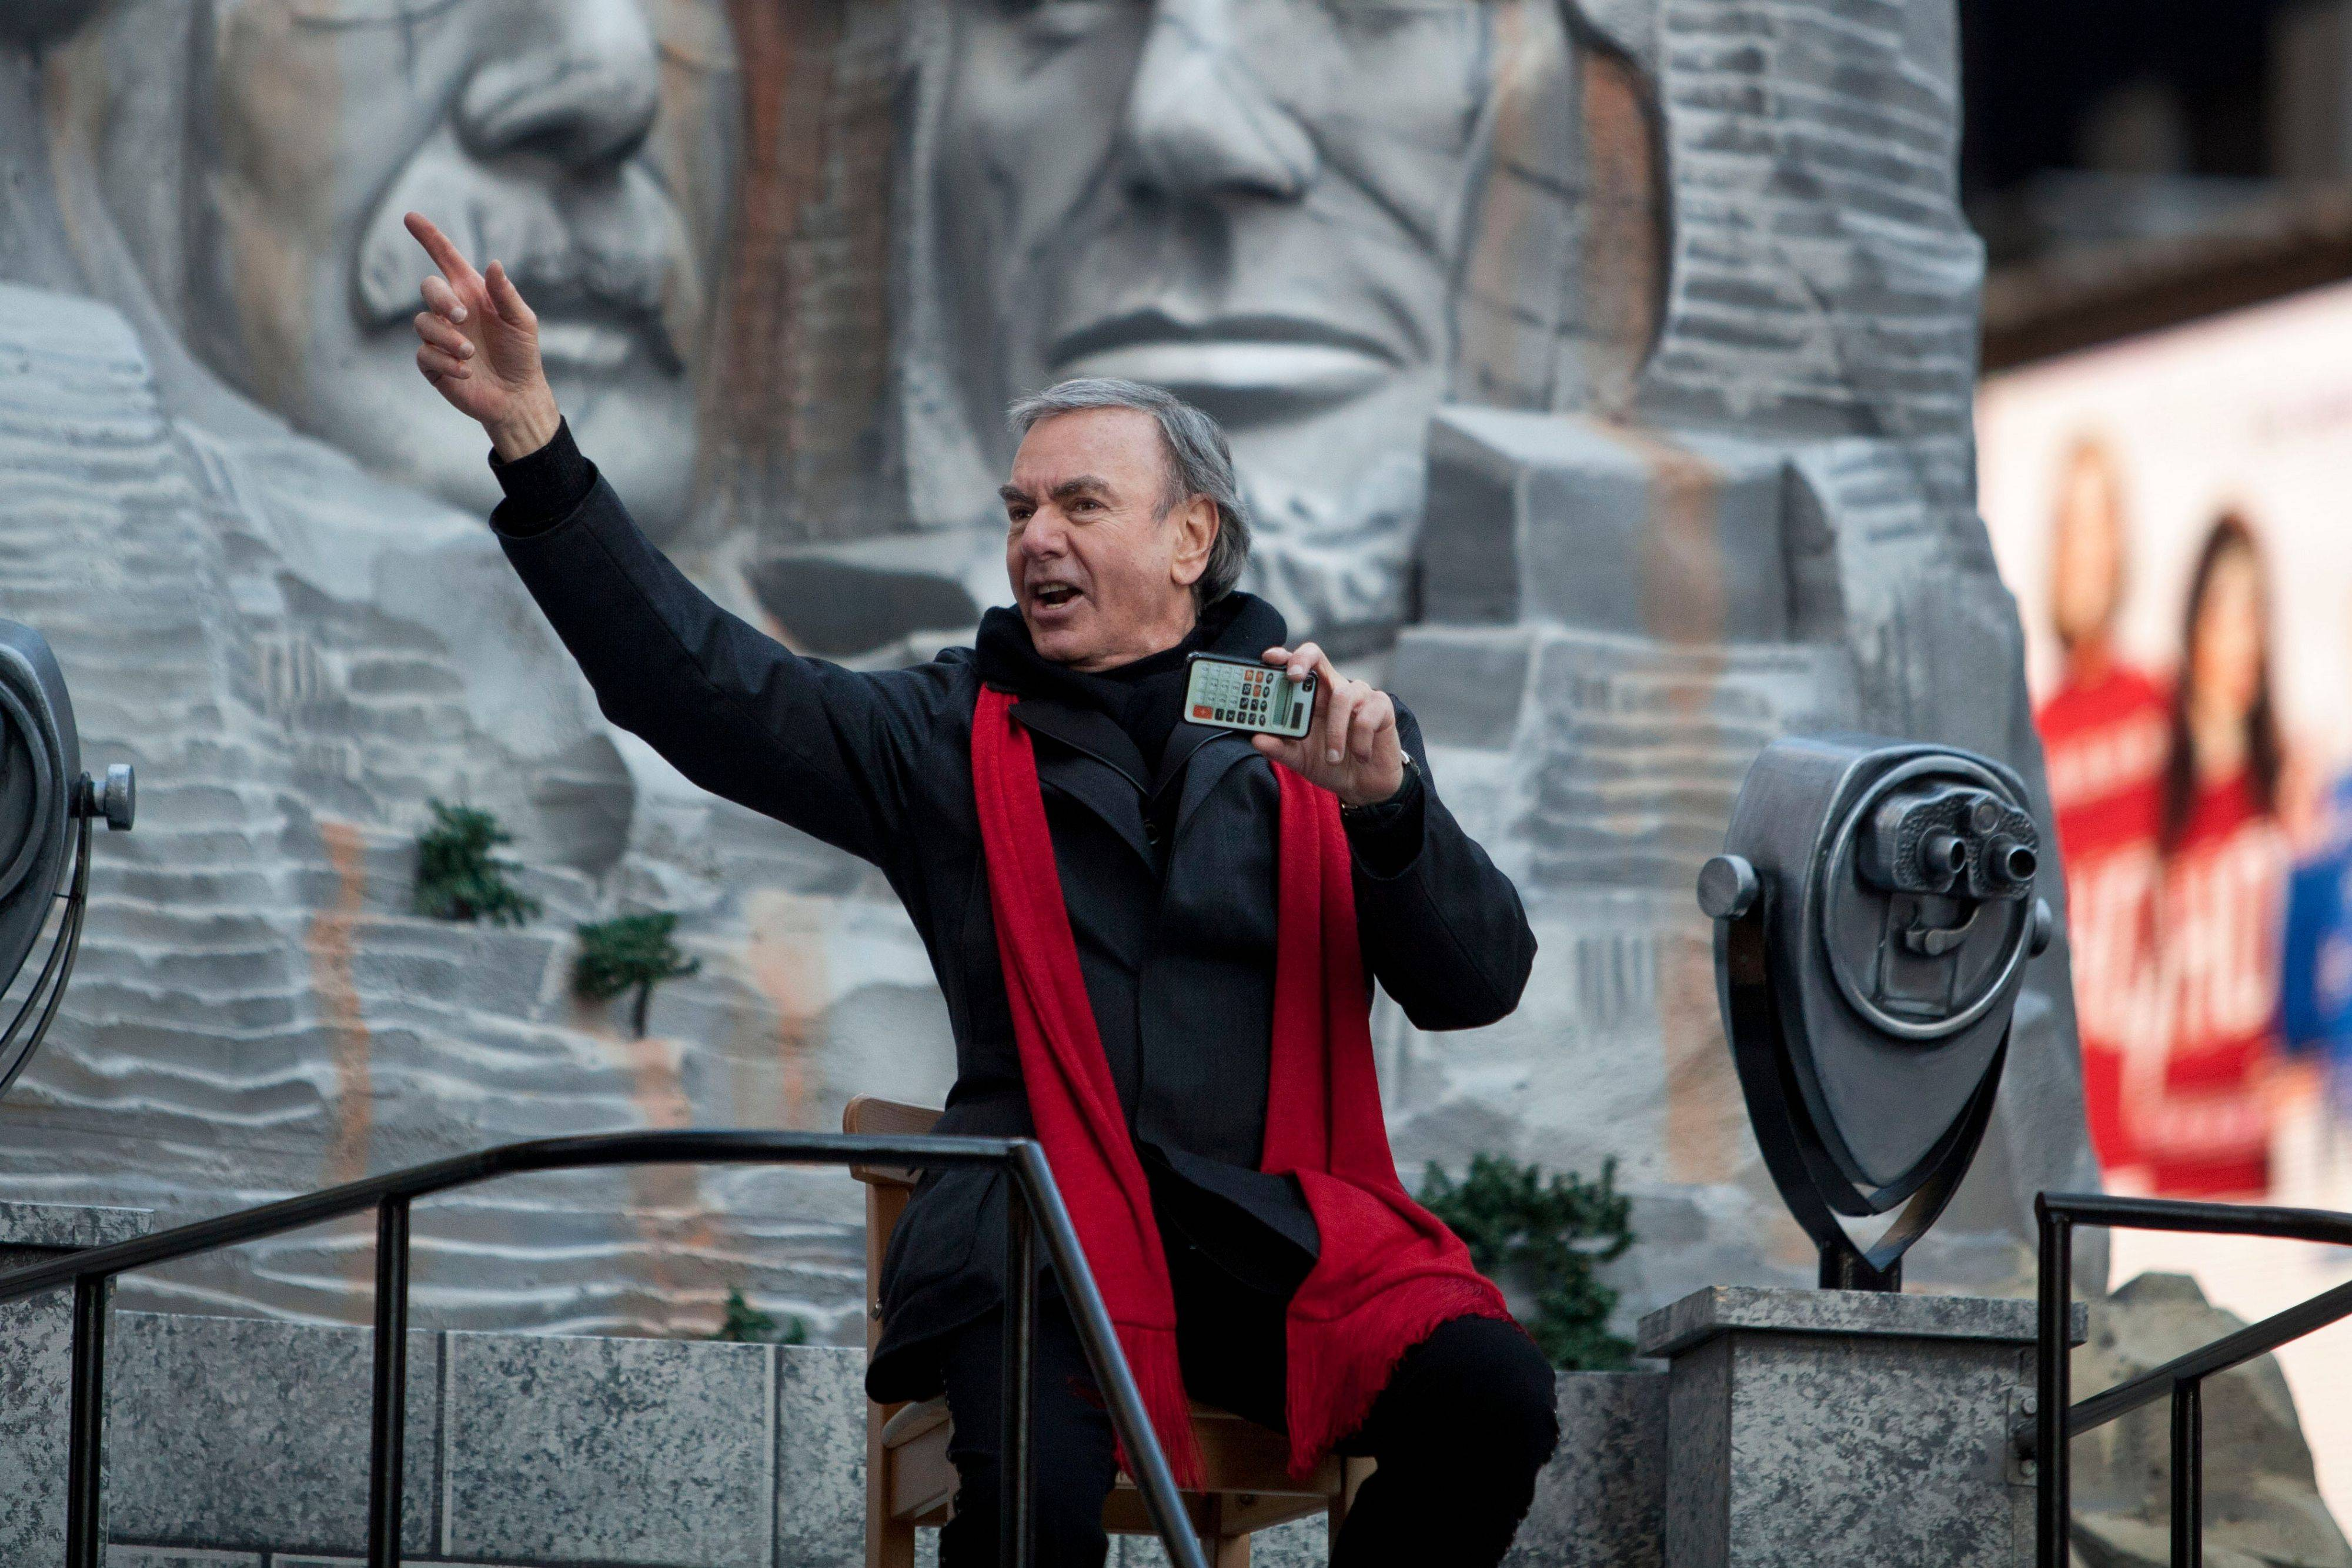 Musician Neil Diamond rides a float during the Macy's Thanksgiving Day Parade in Times Square in New York on Thursday, Nov. 24, 2011. The parade premiered in 1924, this is its 85th year.